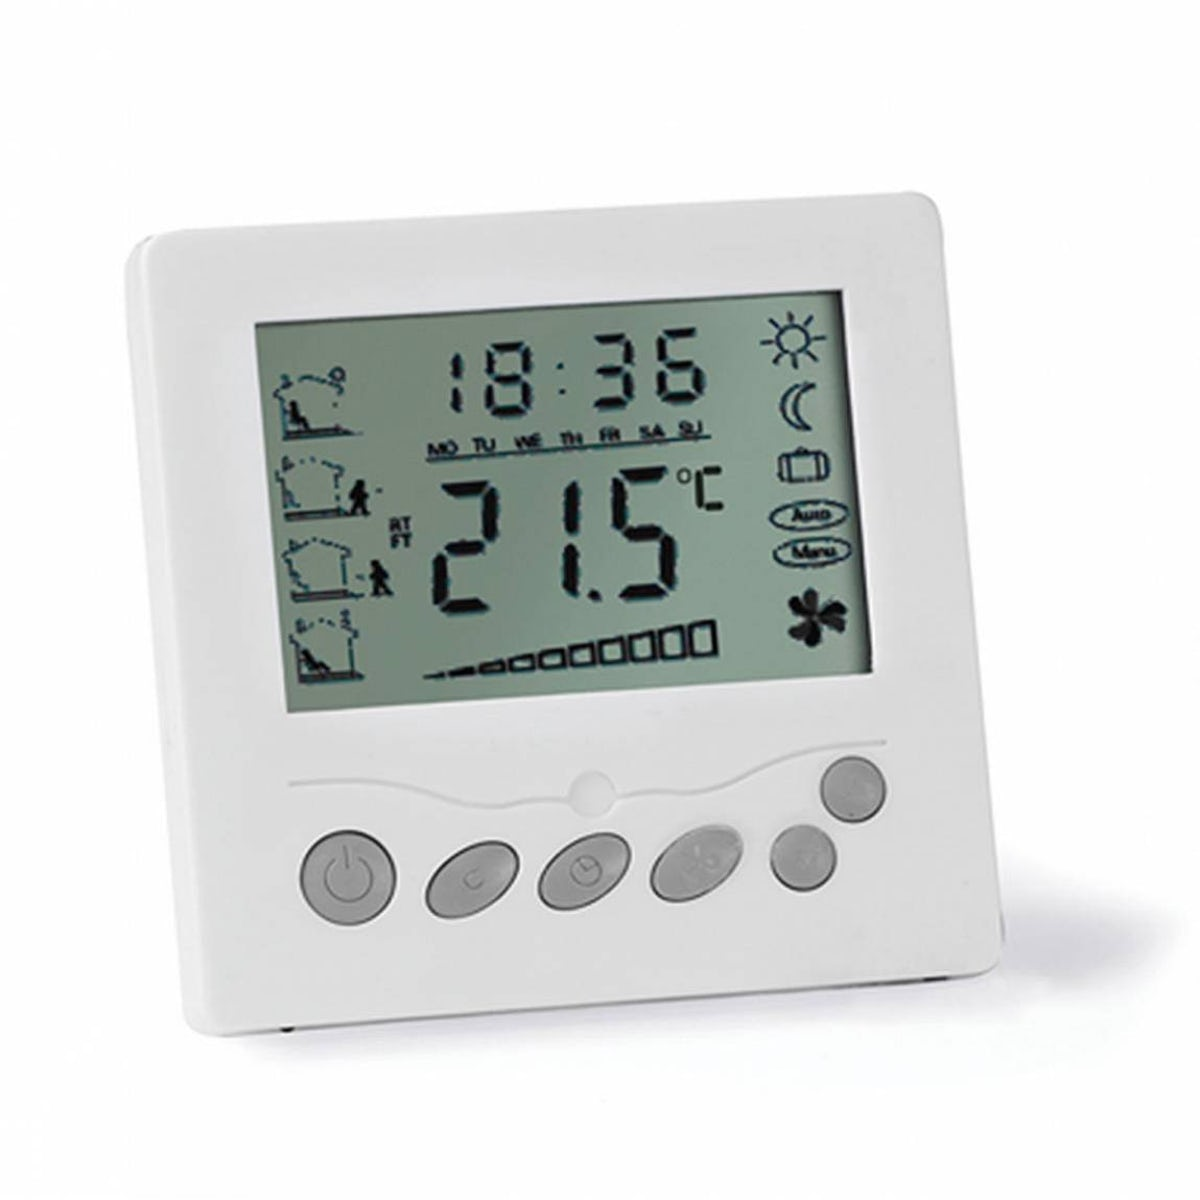 Lcd Thermostat For Underfloor Heating Victoriaplum Com